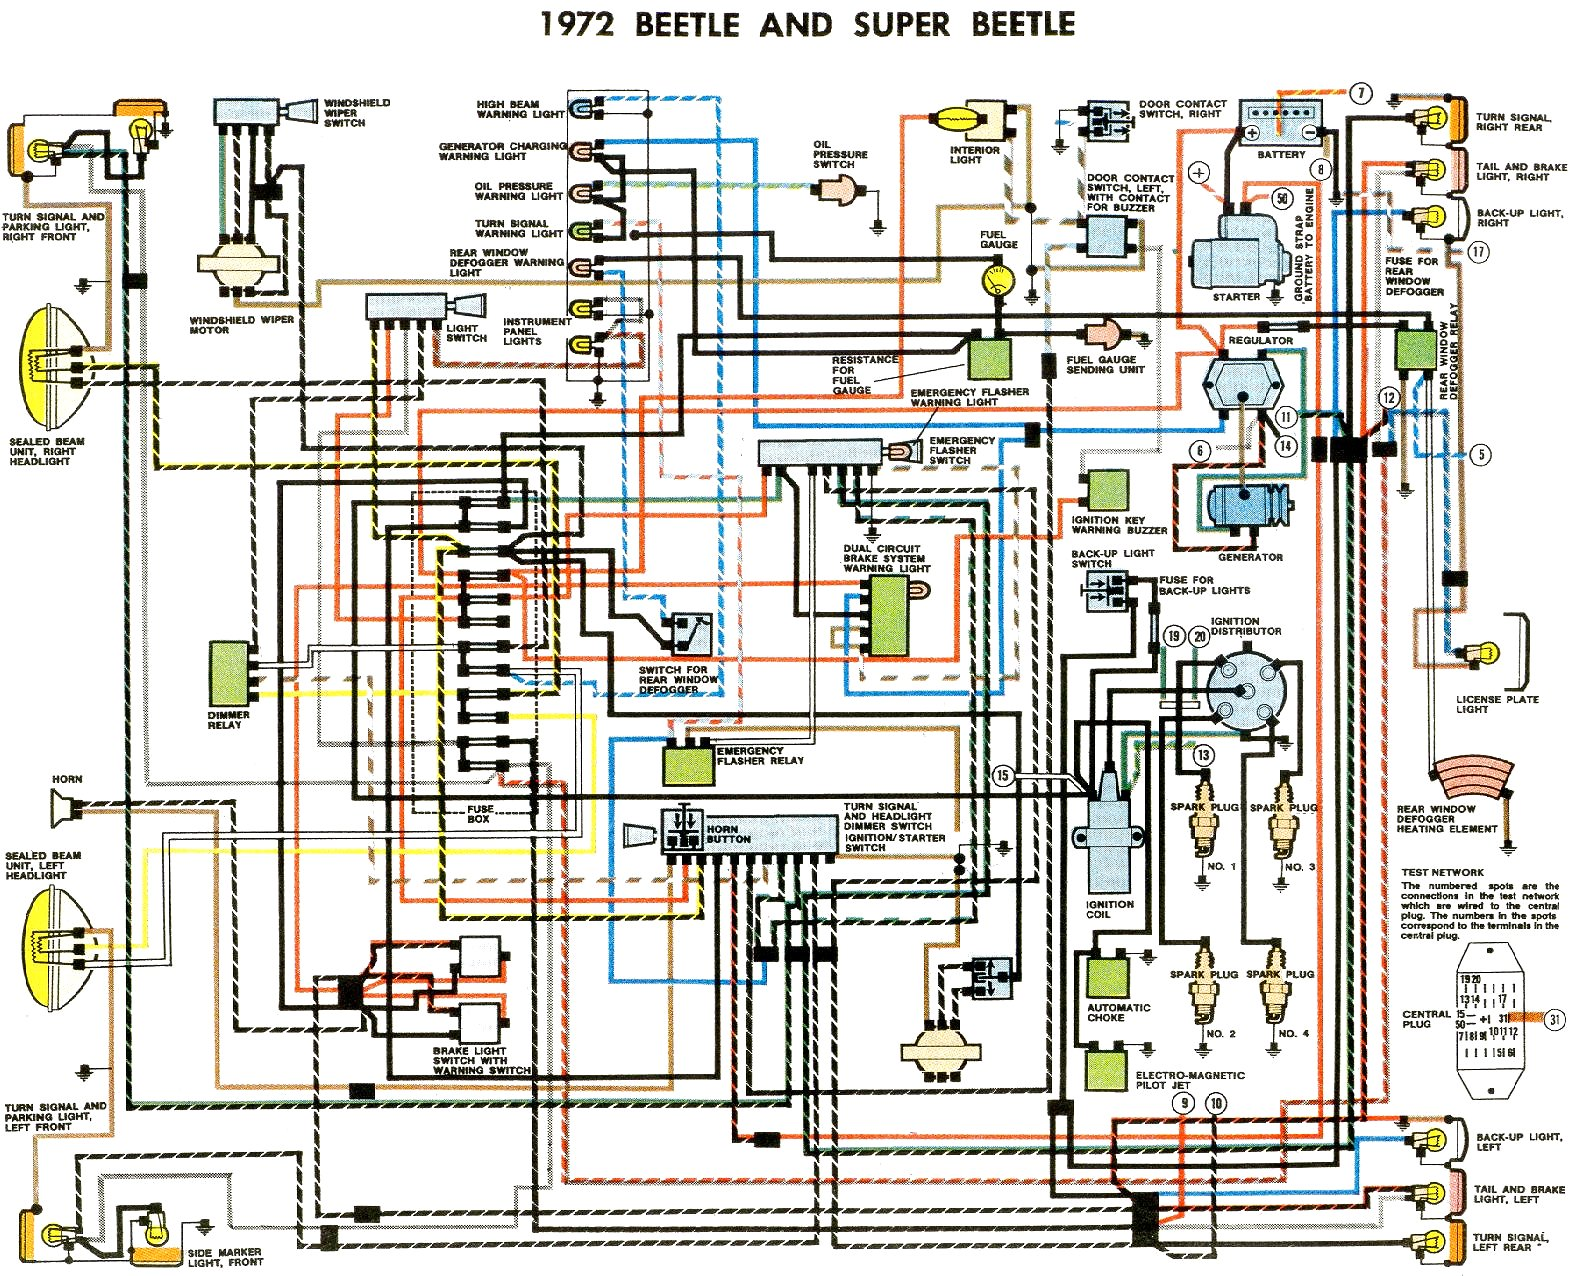 71690 Indicator Wiring Diagram on 72 vw super beetle